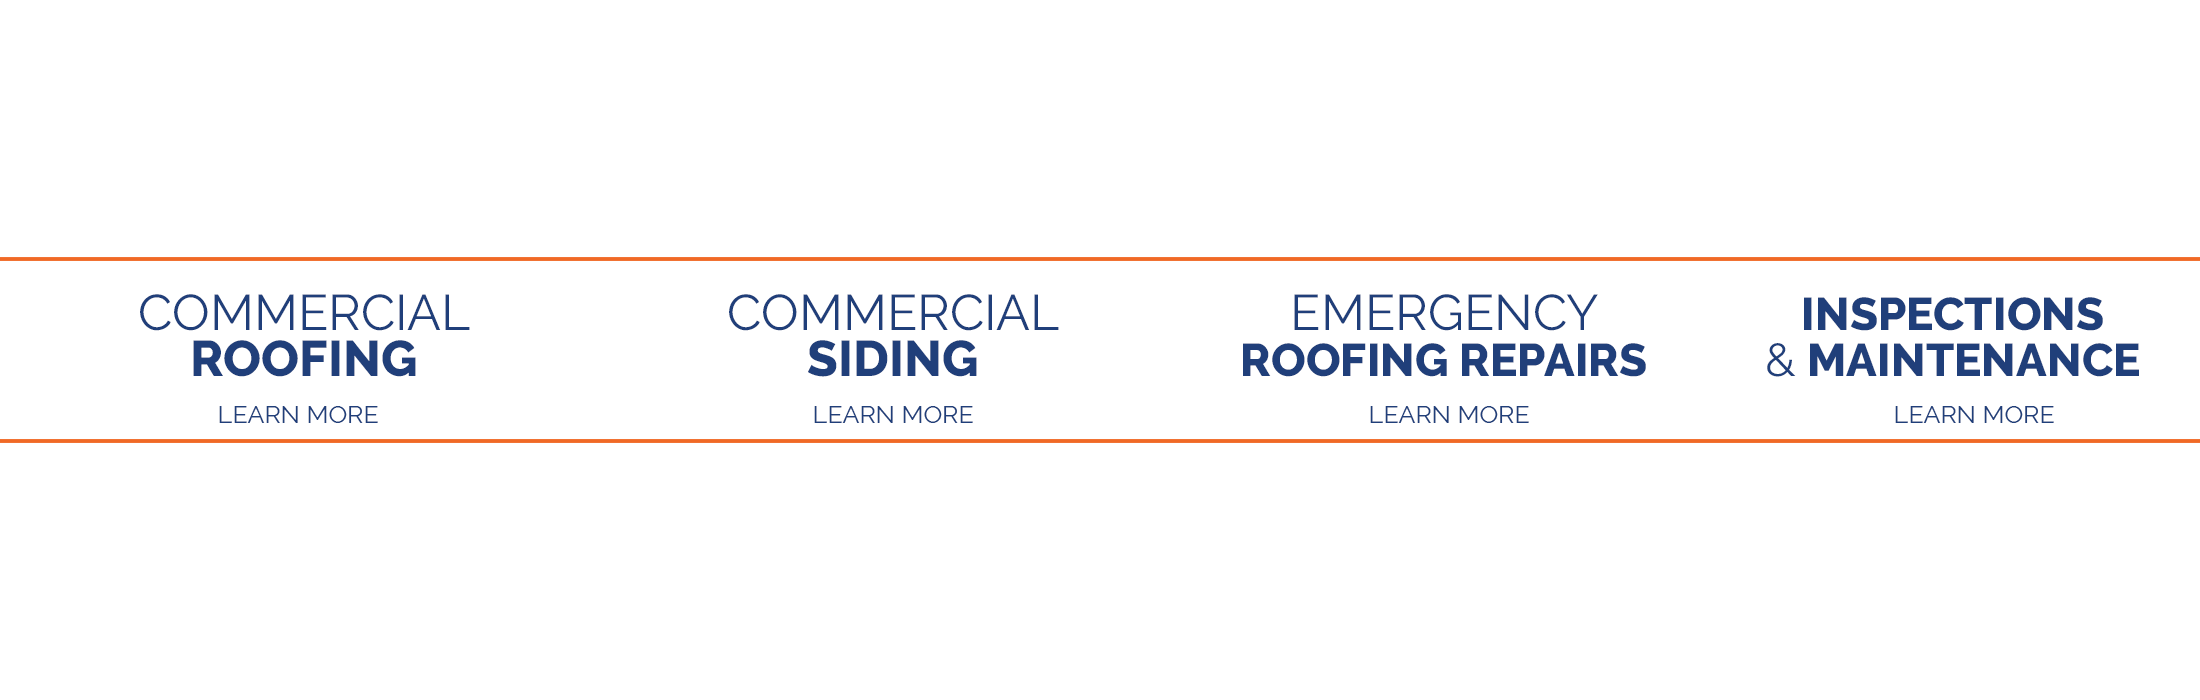 Geissler Roofing Co Commercial Roofing Experts In St Louis